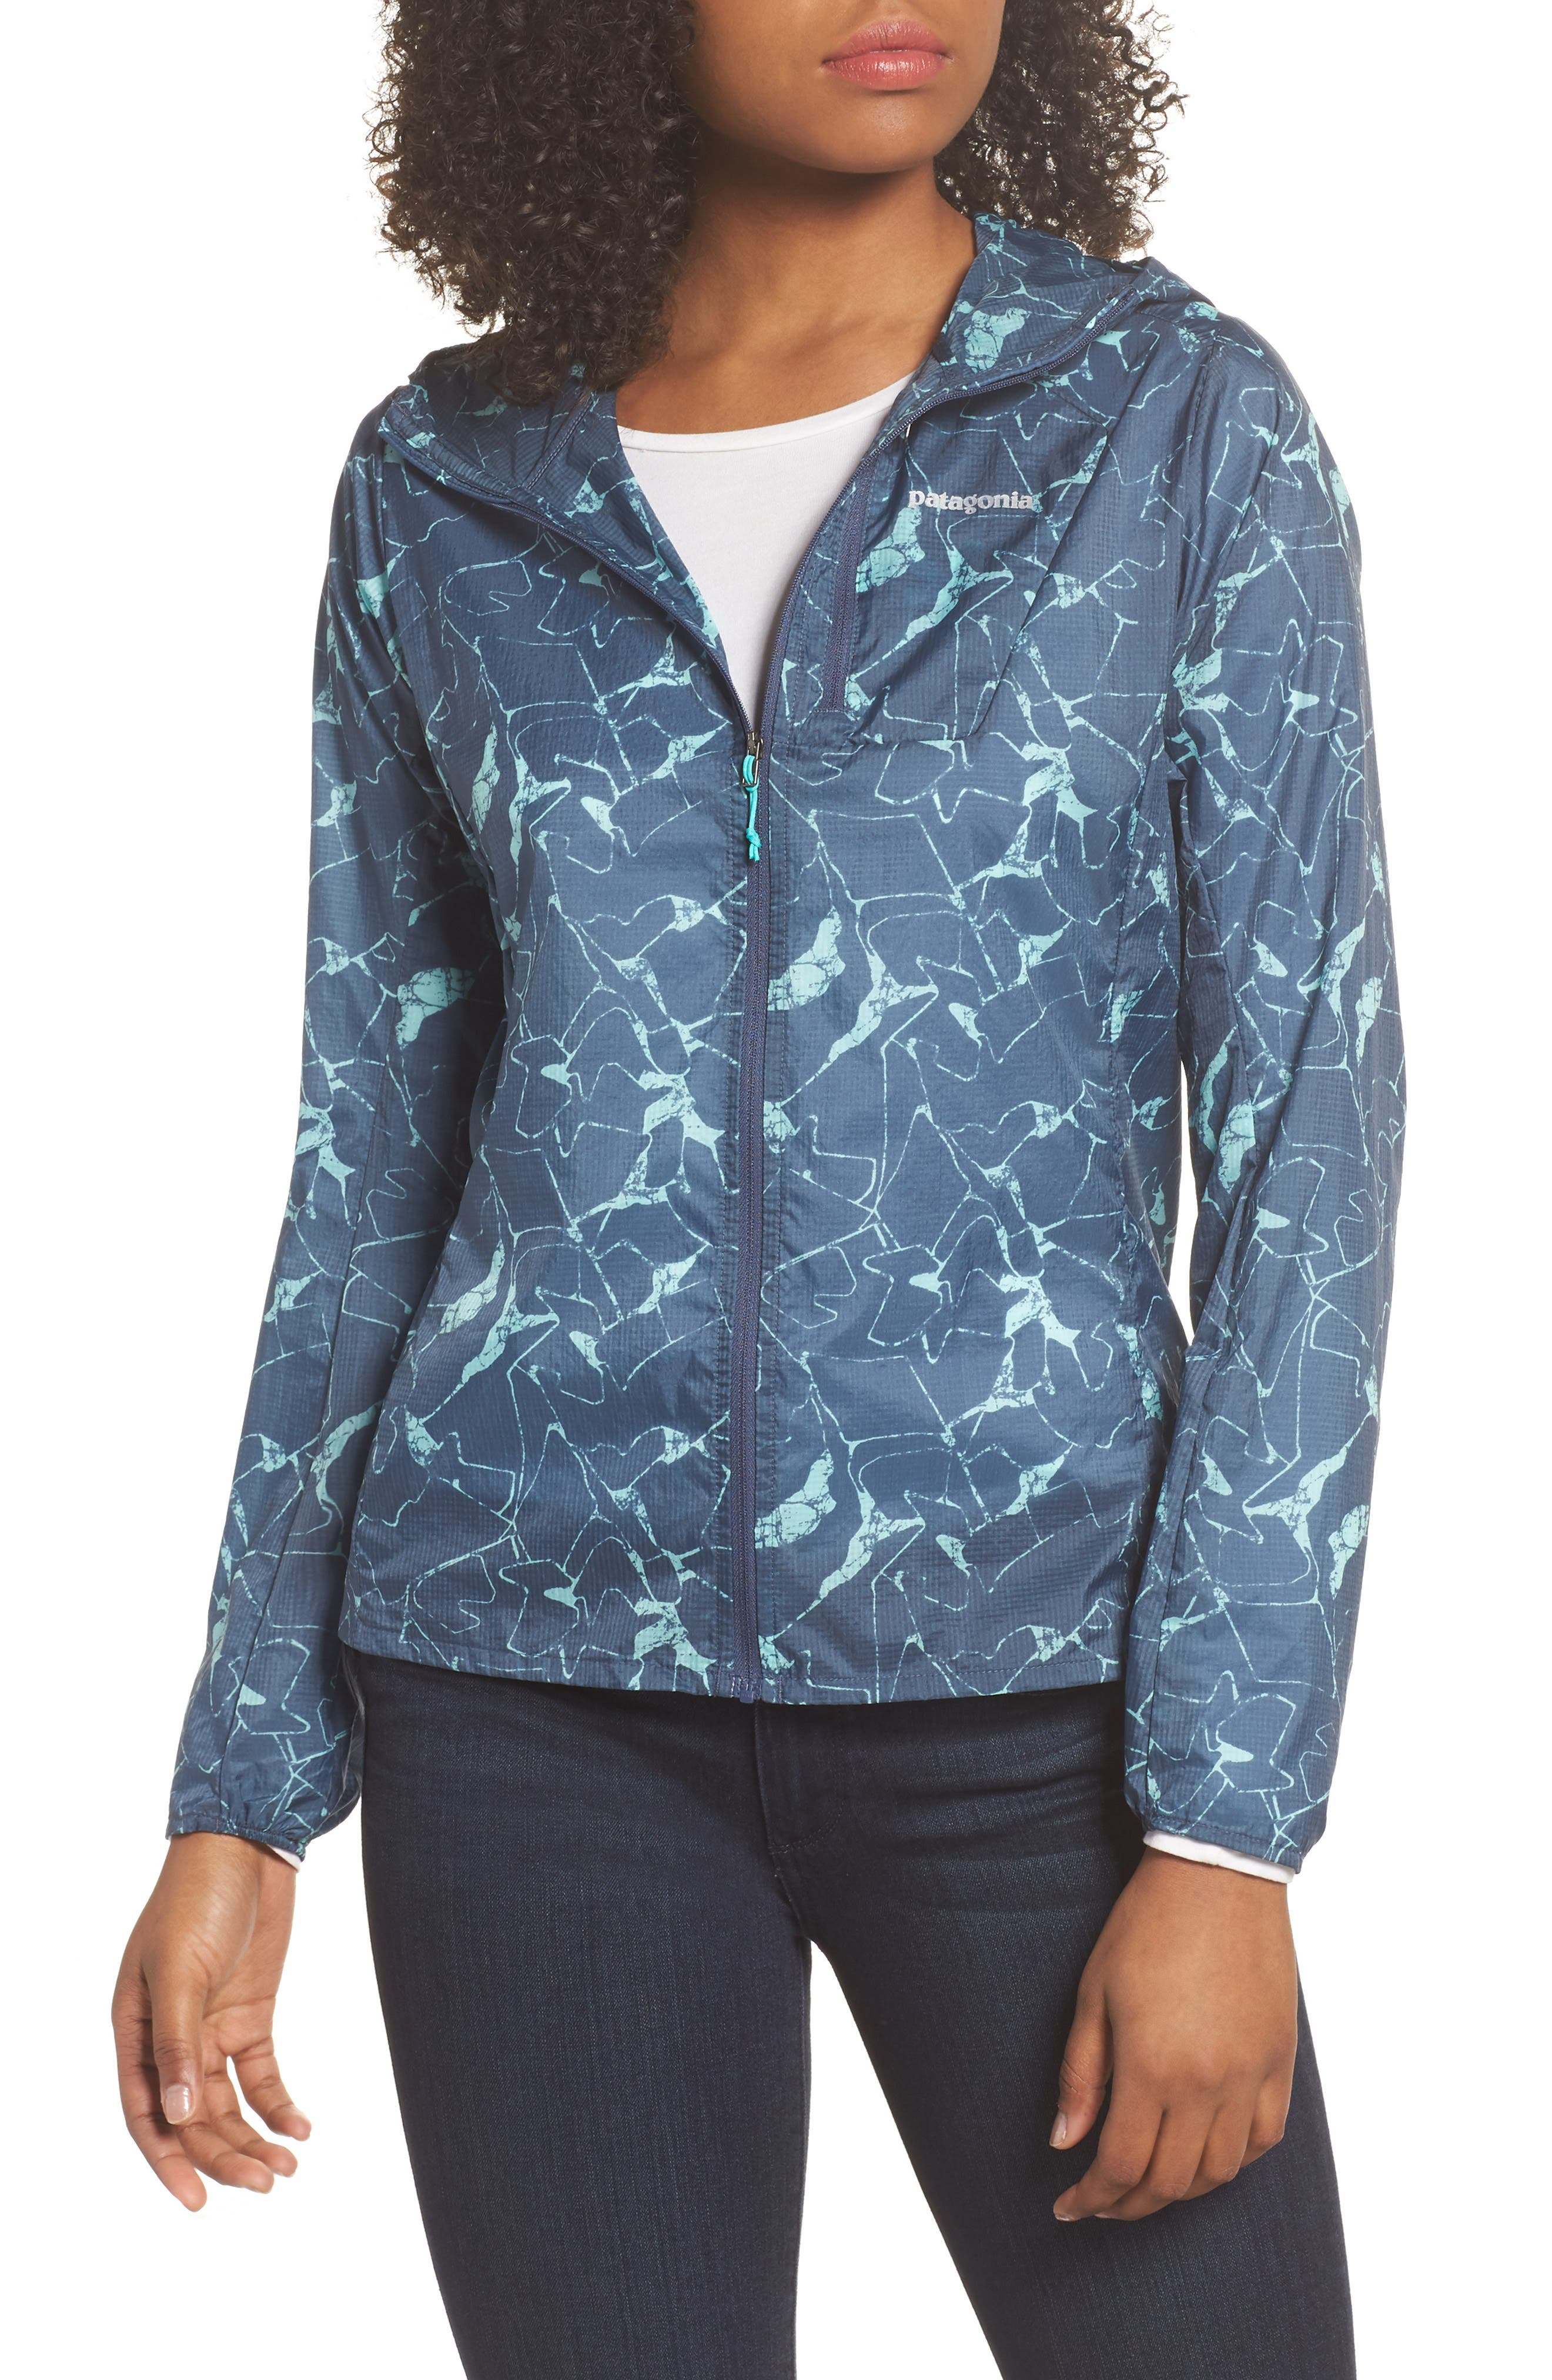 Houdini Water Repellent Jacket,                             Main thumbnail 1, color,                             Rock Jigsaw/ Dolomite Blue